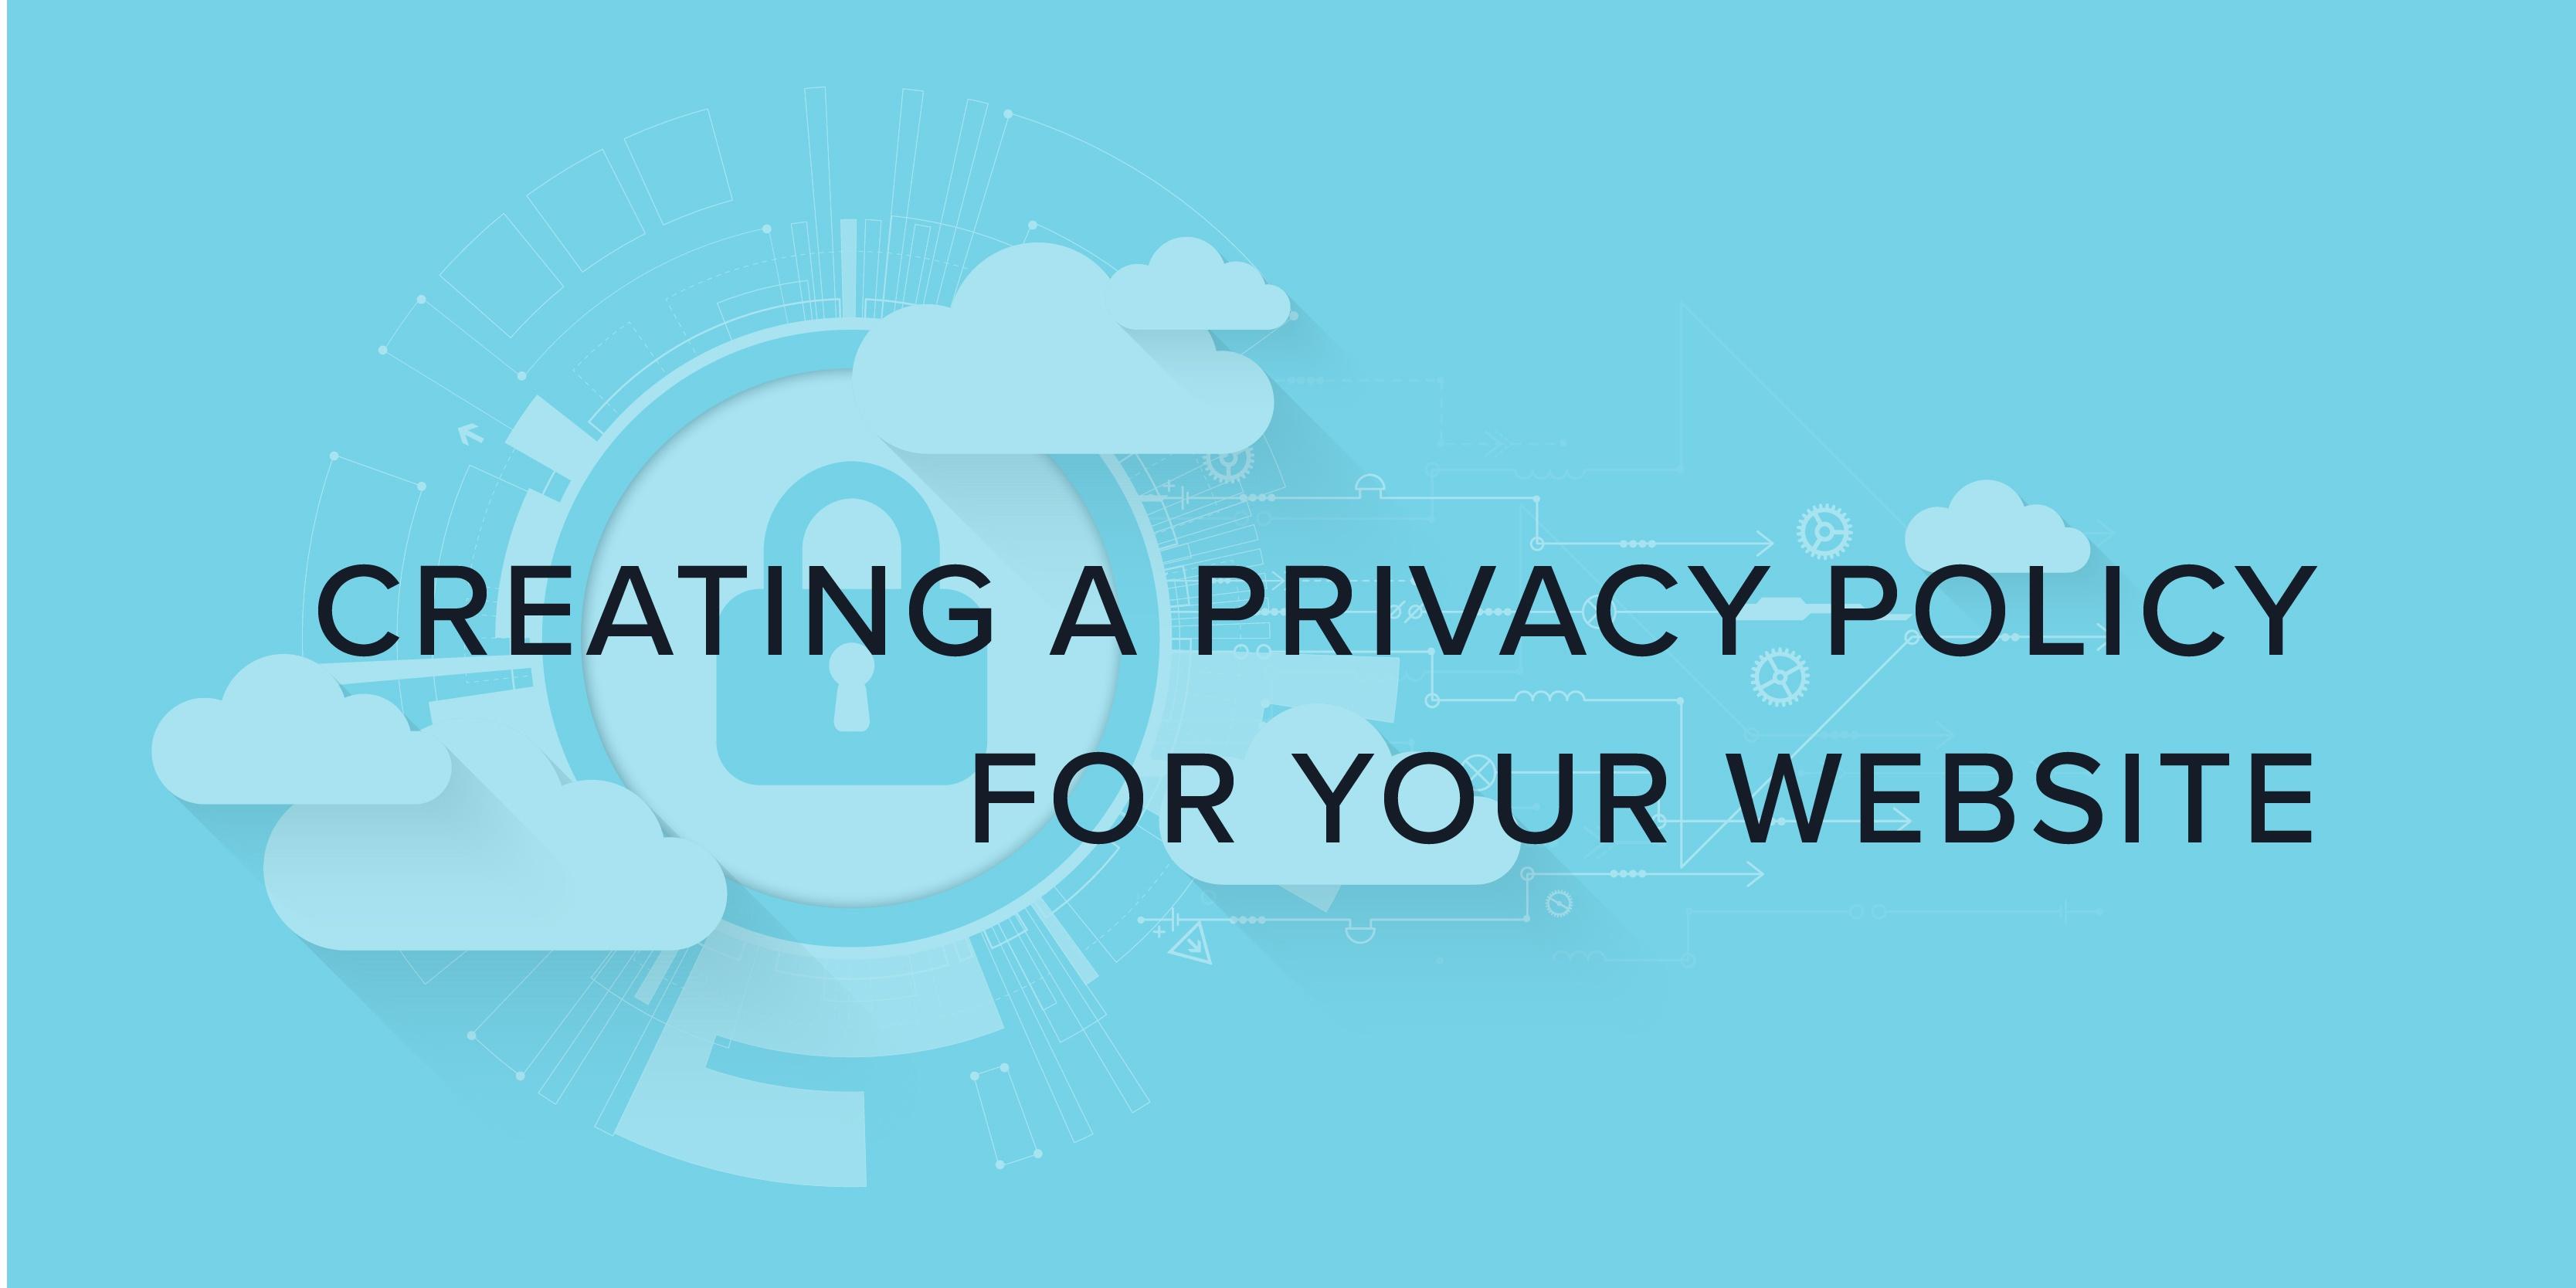 Creating a privacy policy for your website